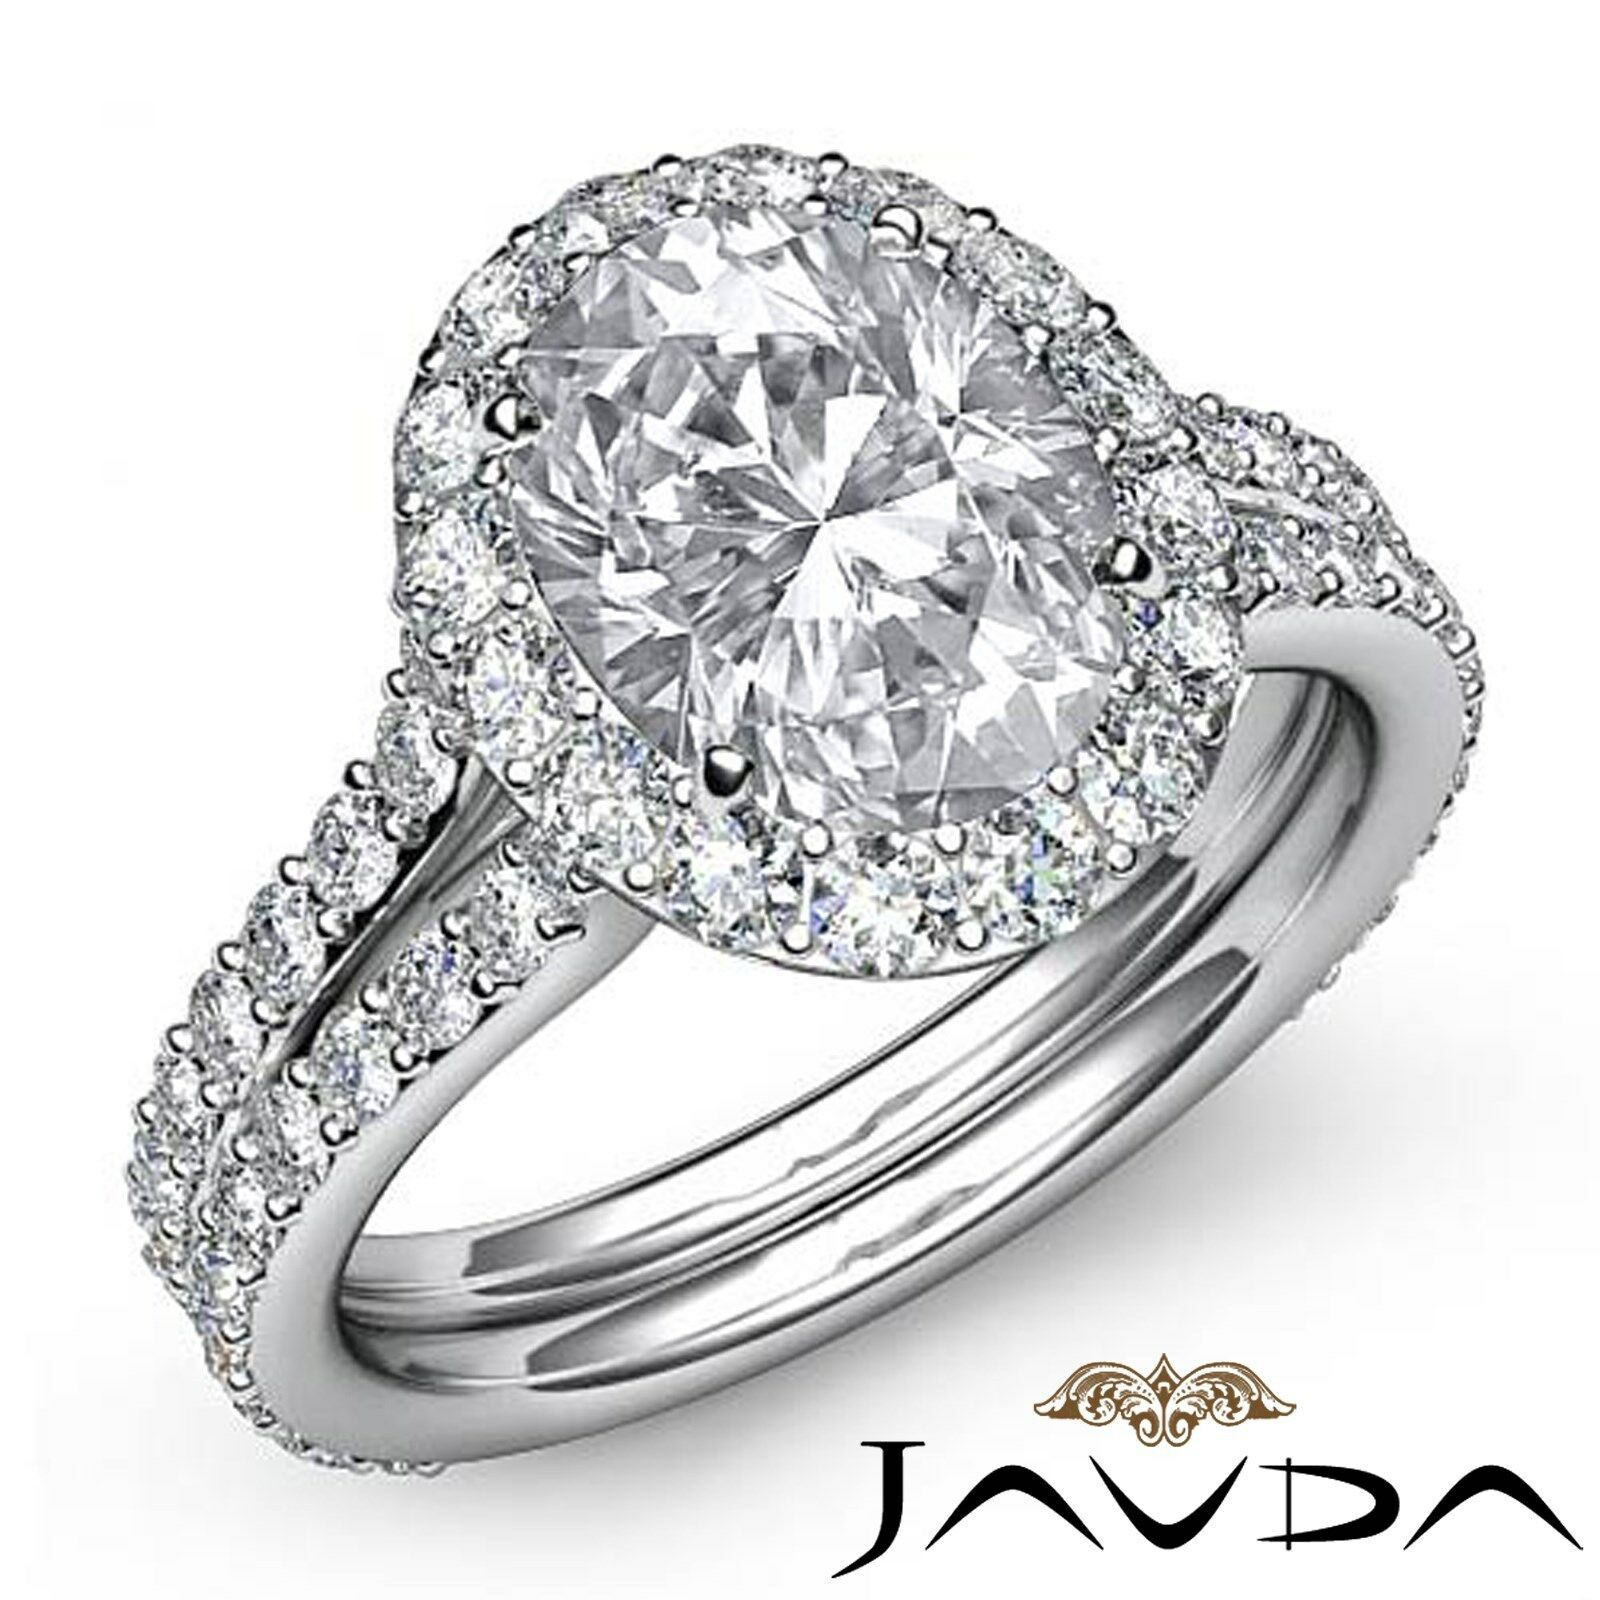 Halo Pave Set Oval Natural Diamond Engagement Anniversary Ring GIA F VS2 2.76Ct